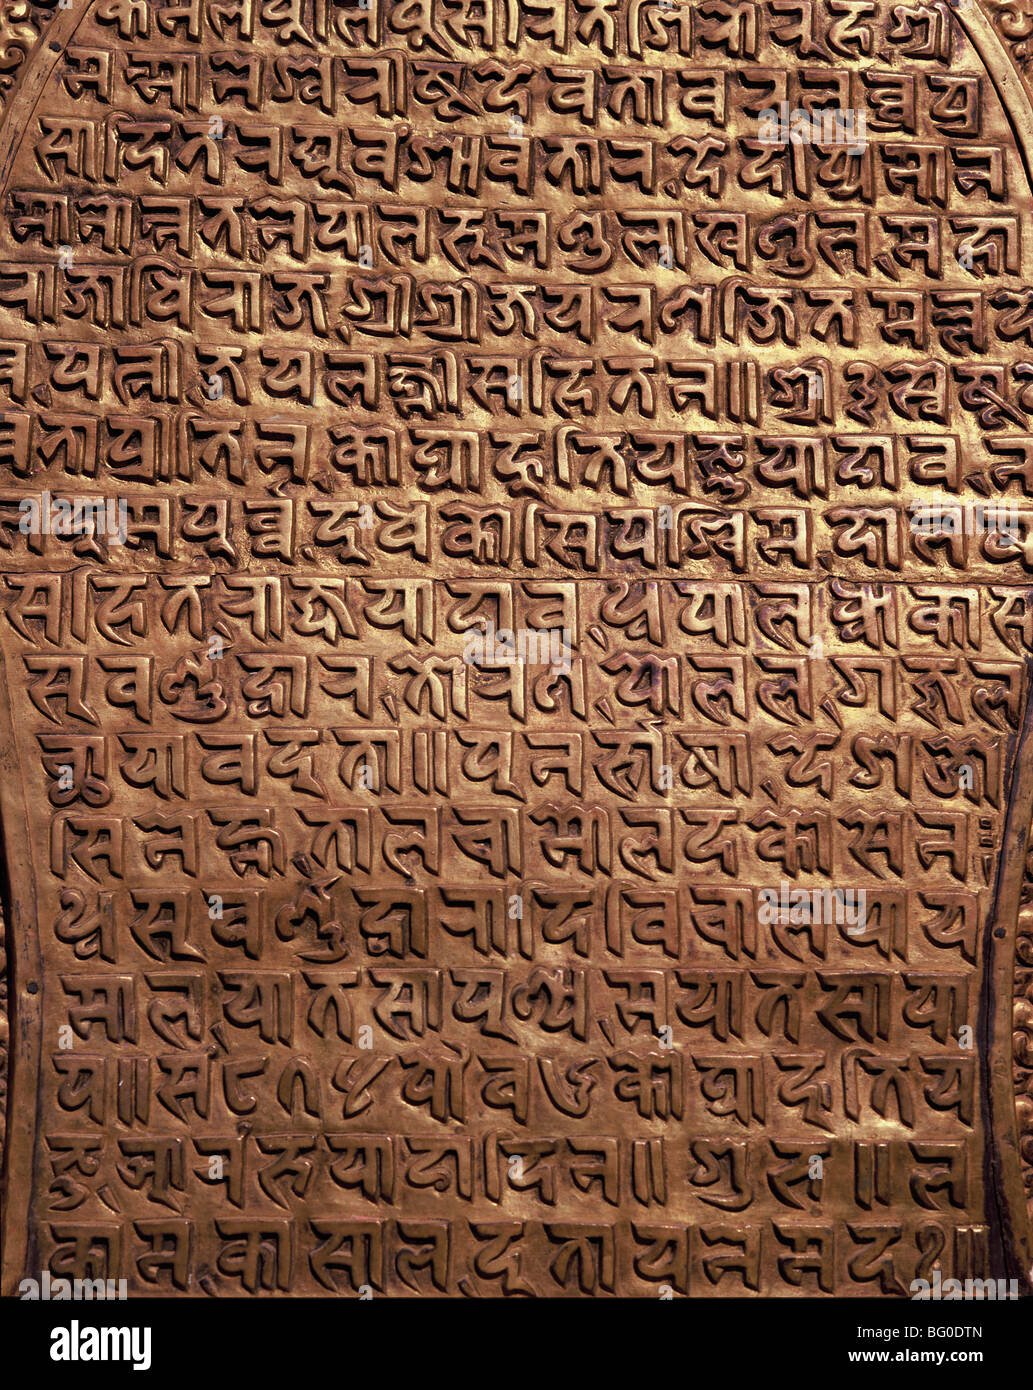 Nepalese inscription on brass at Royal Palace in Bhaktapur, Nepal, Asia - Stock Image